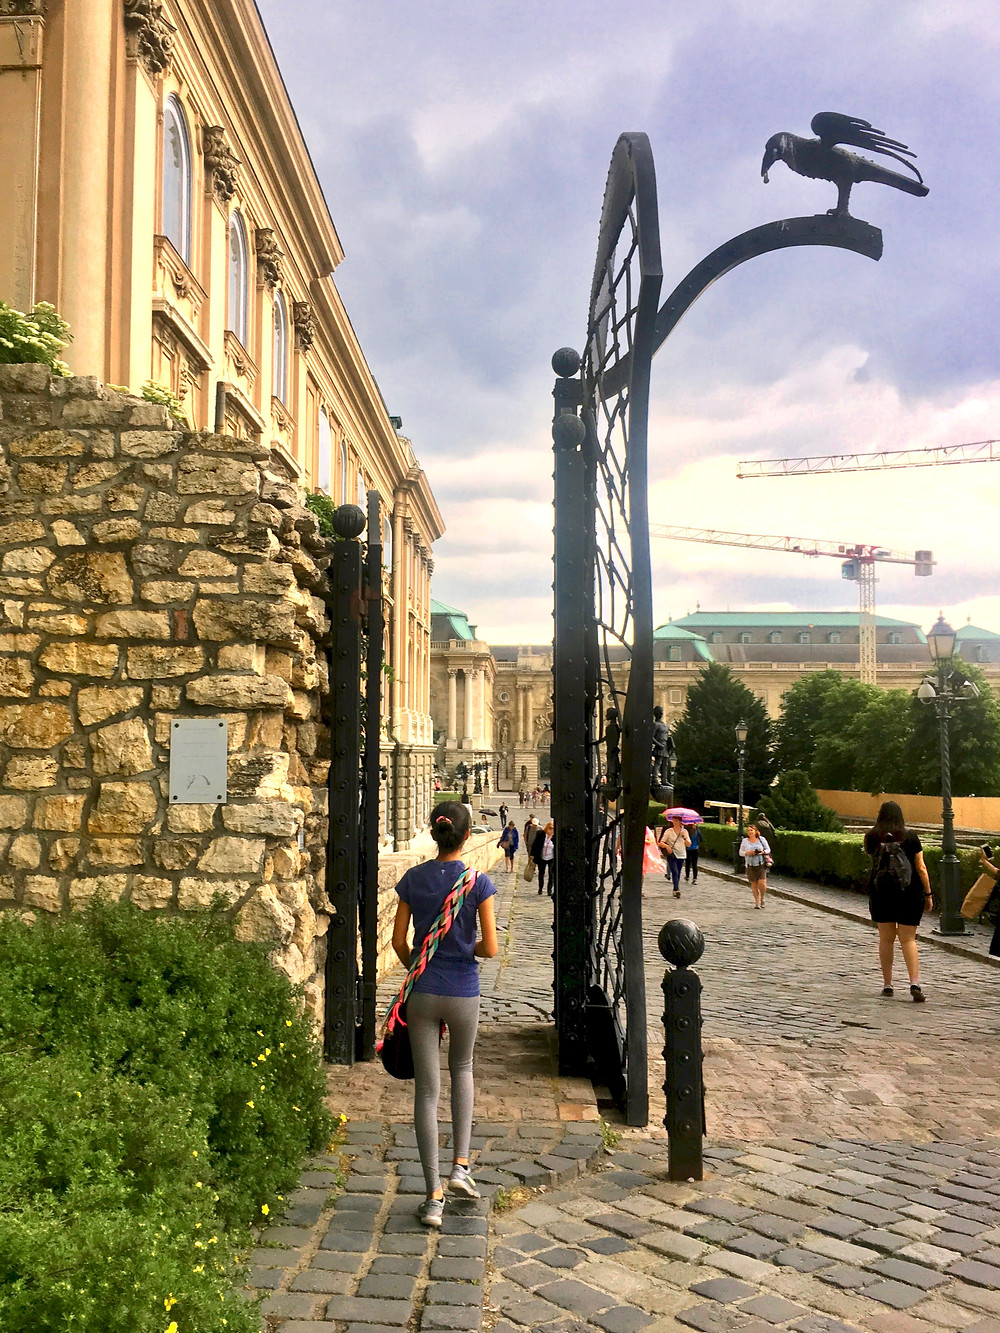 Eryn walking through a black gate with a metal crow perched on it to enter the Buda Castle complex in Budapest, Hungary